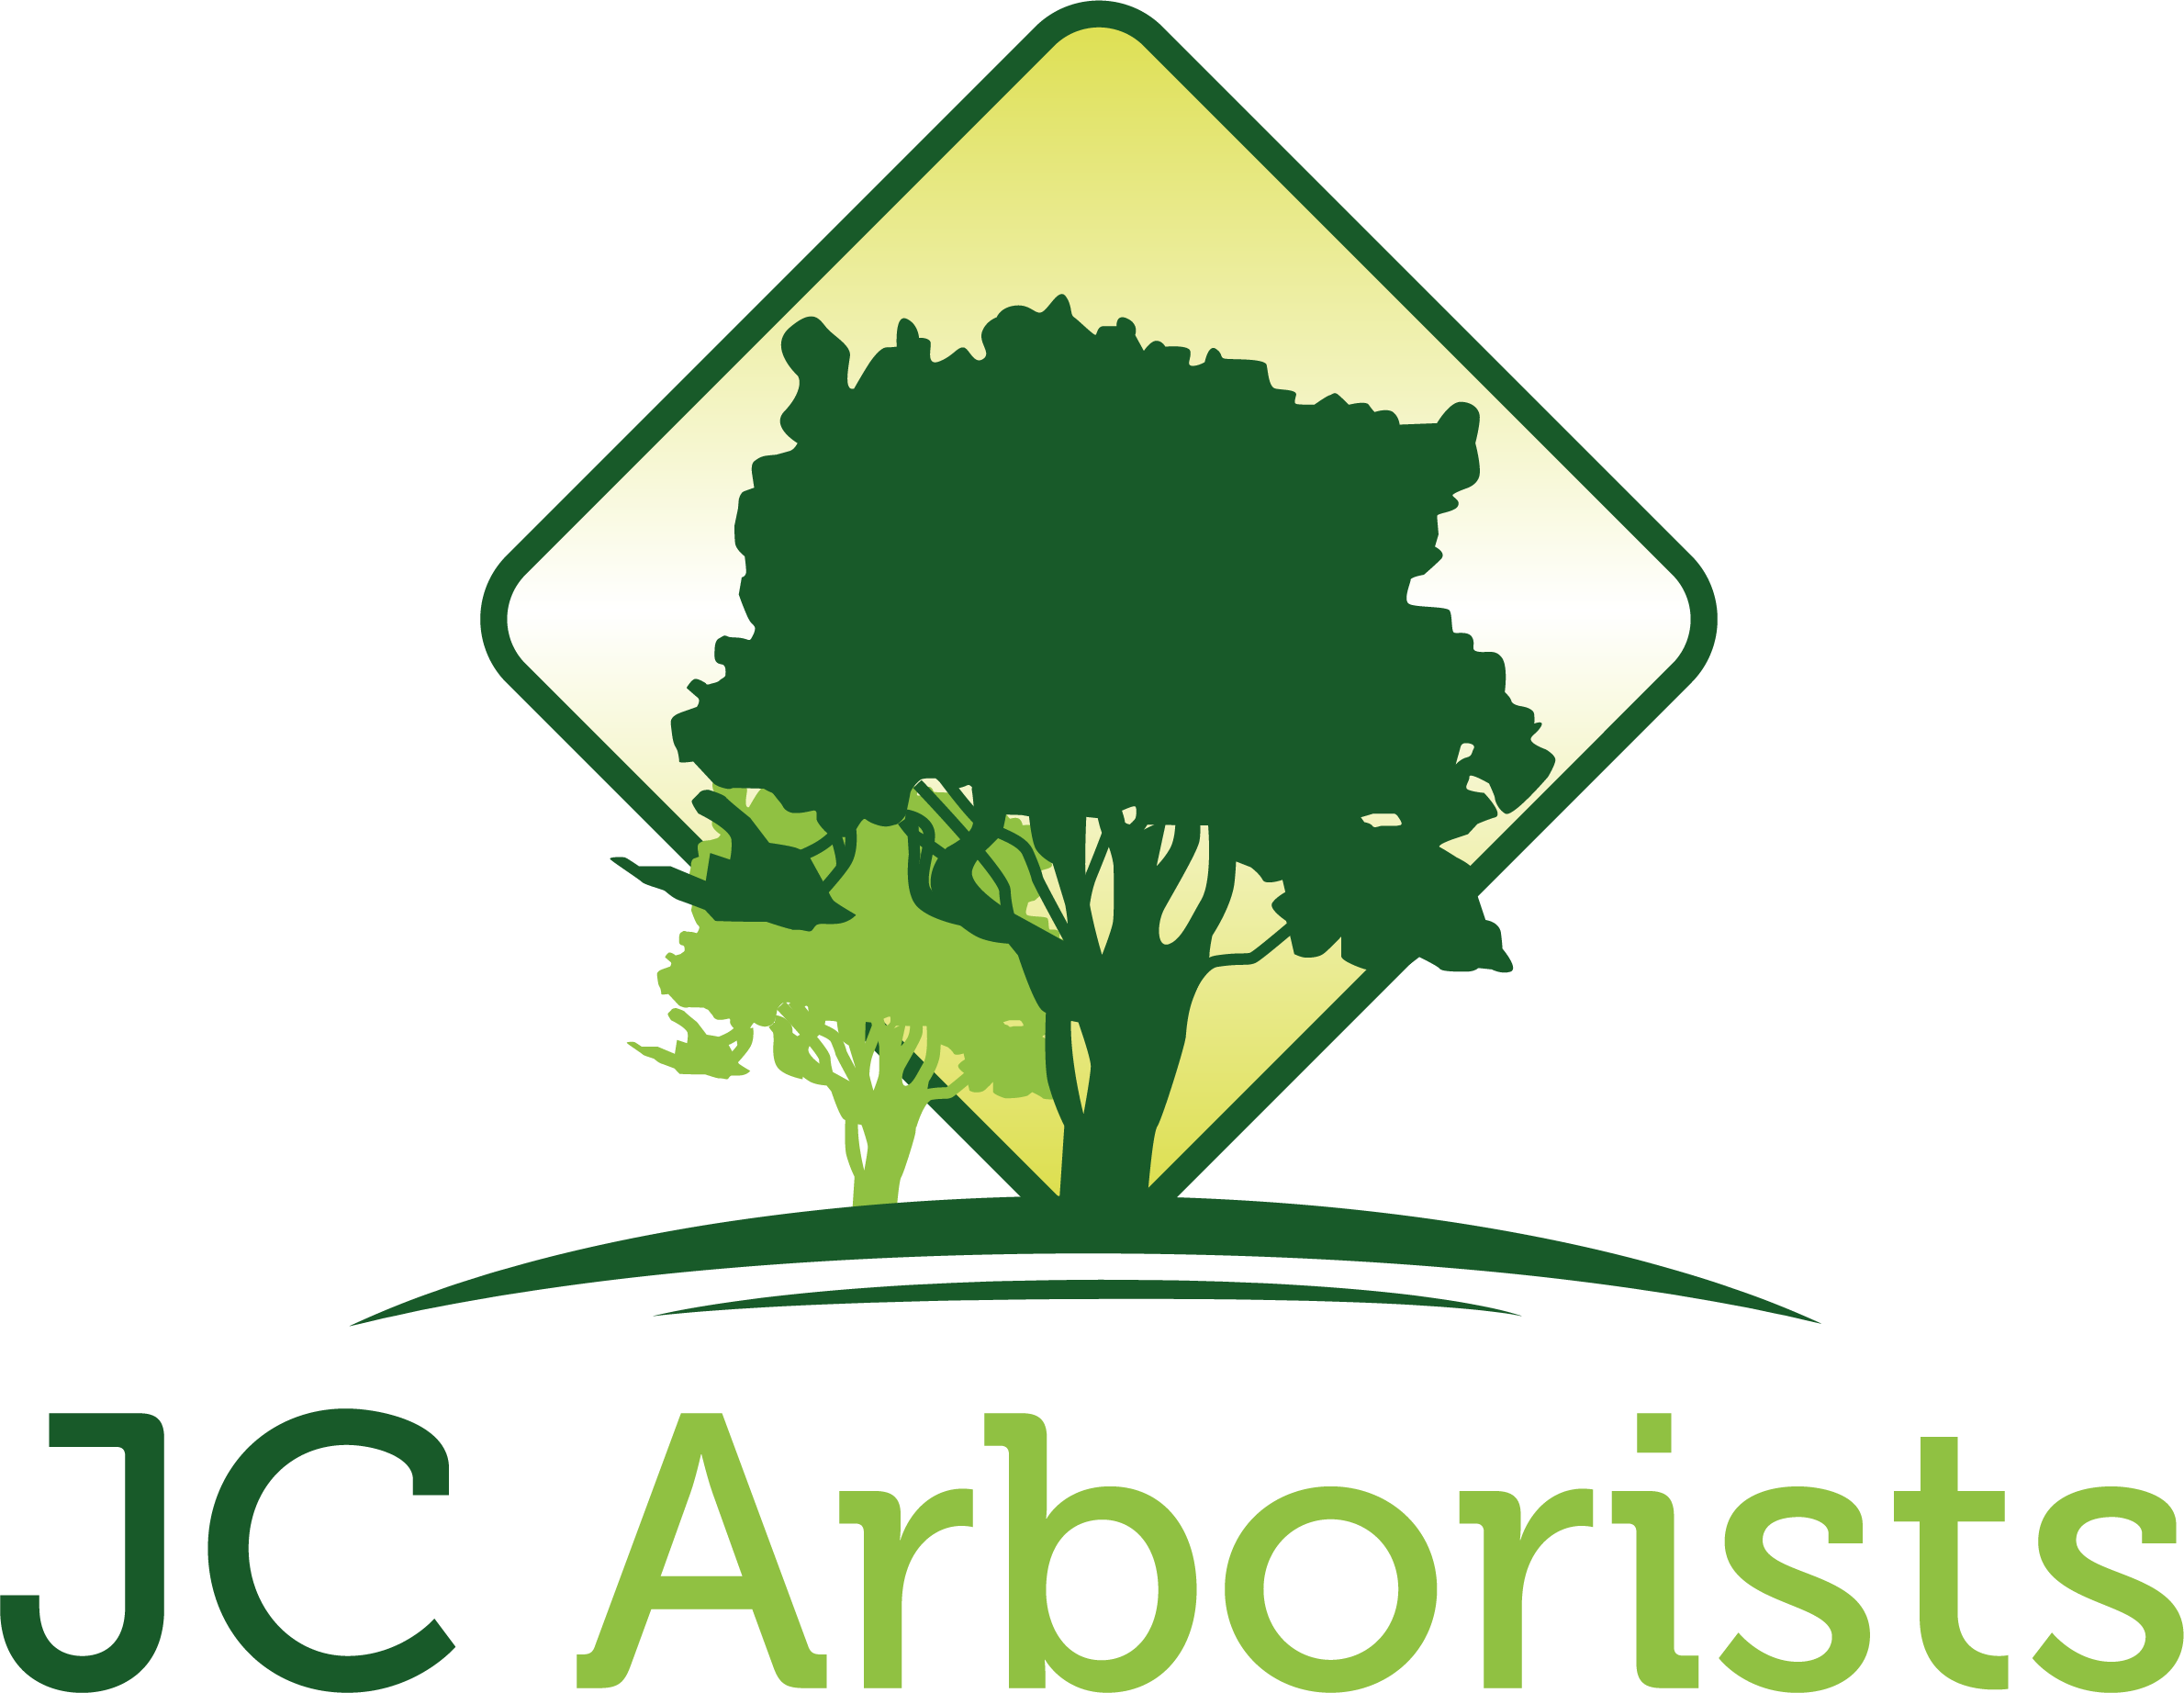 JC Arborists Harrogate Tree Surgeon